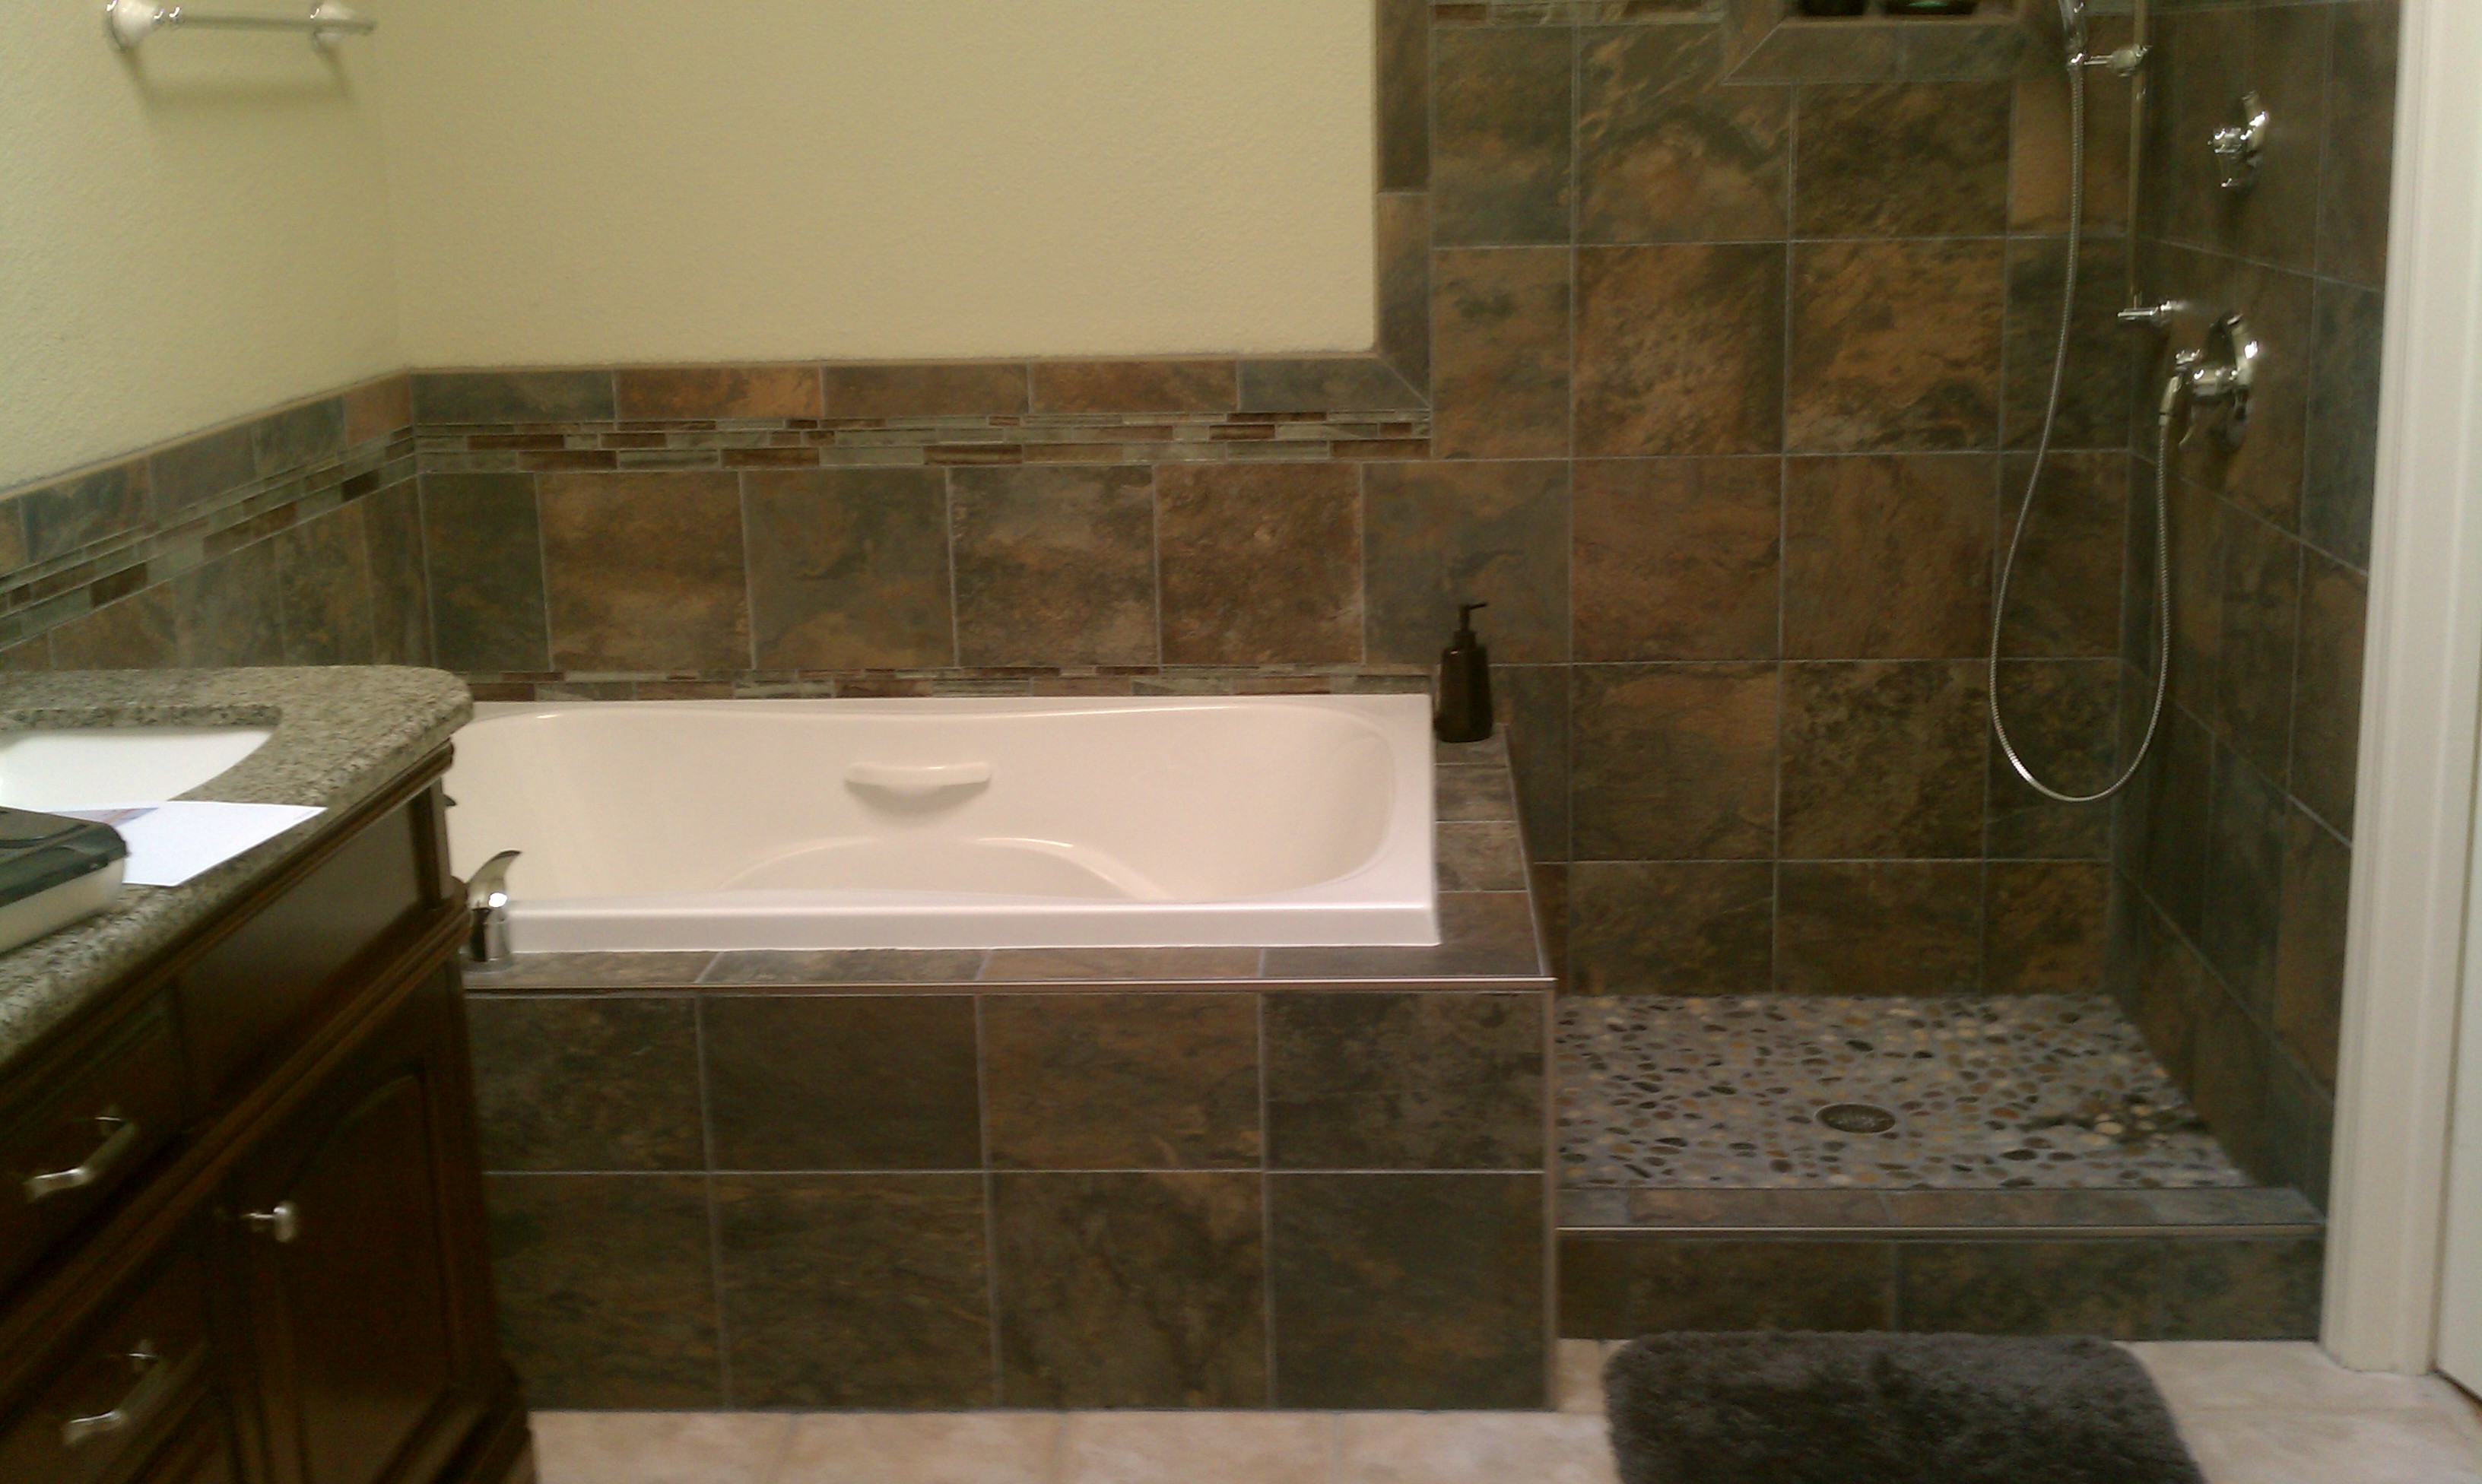 Bathroom Remodel by CWI General Contractor in Livermore